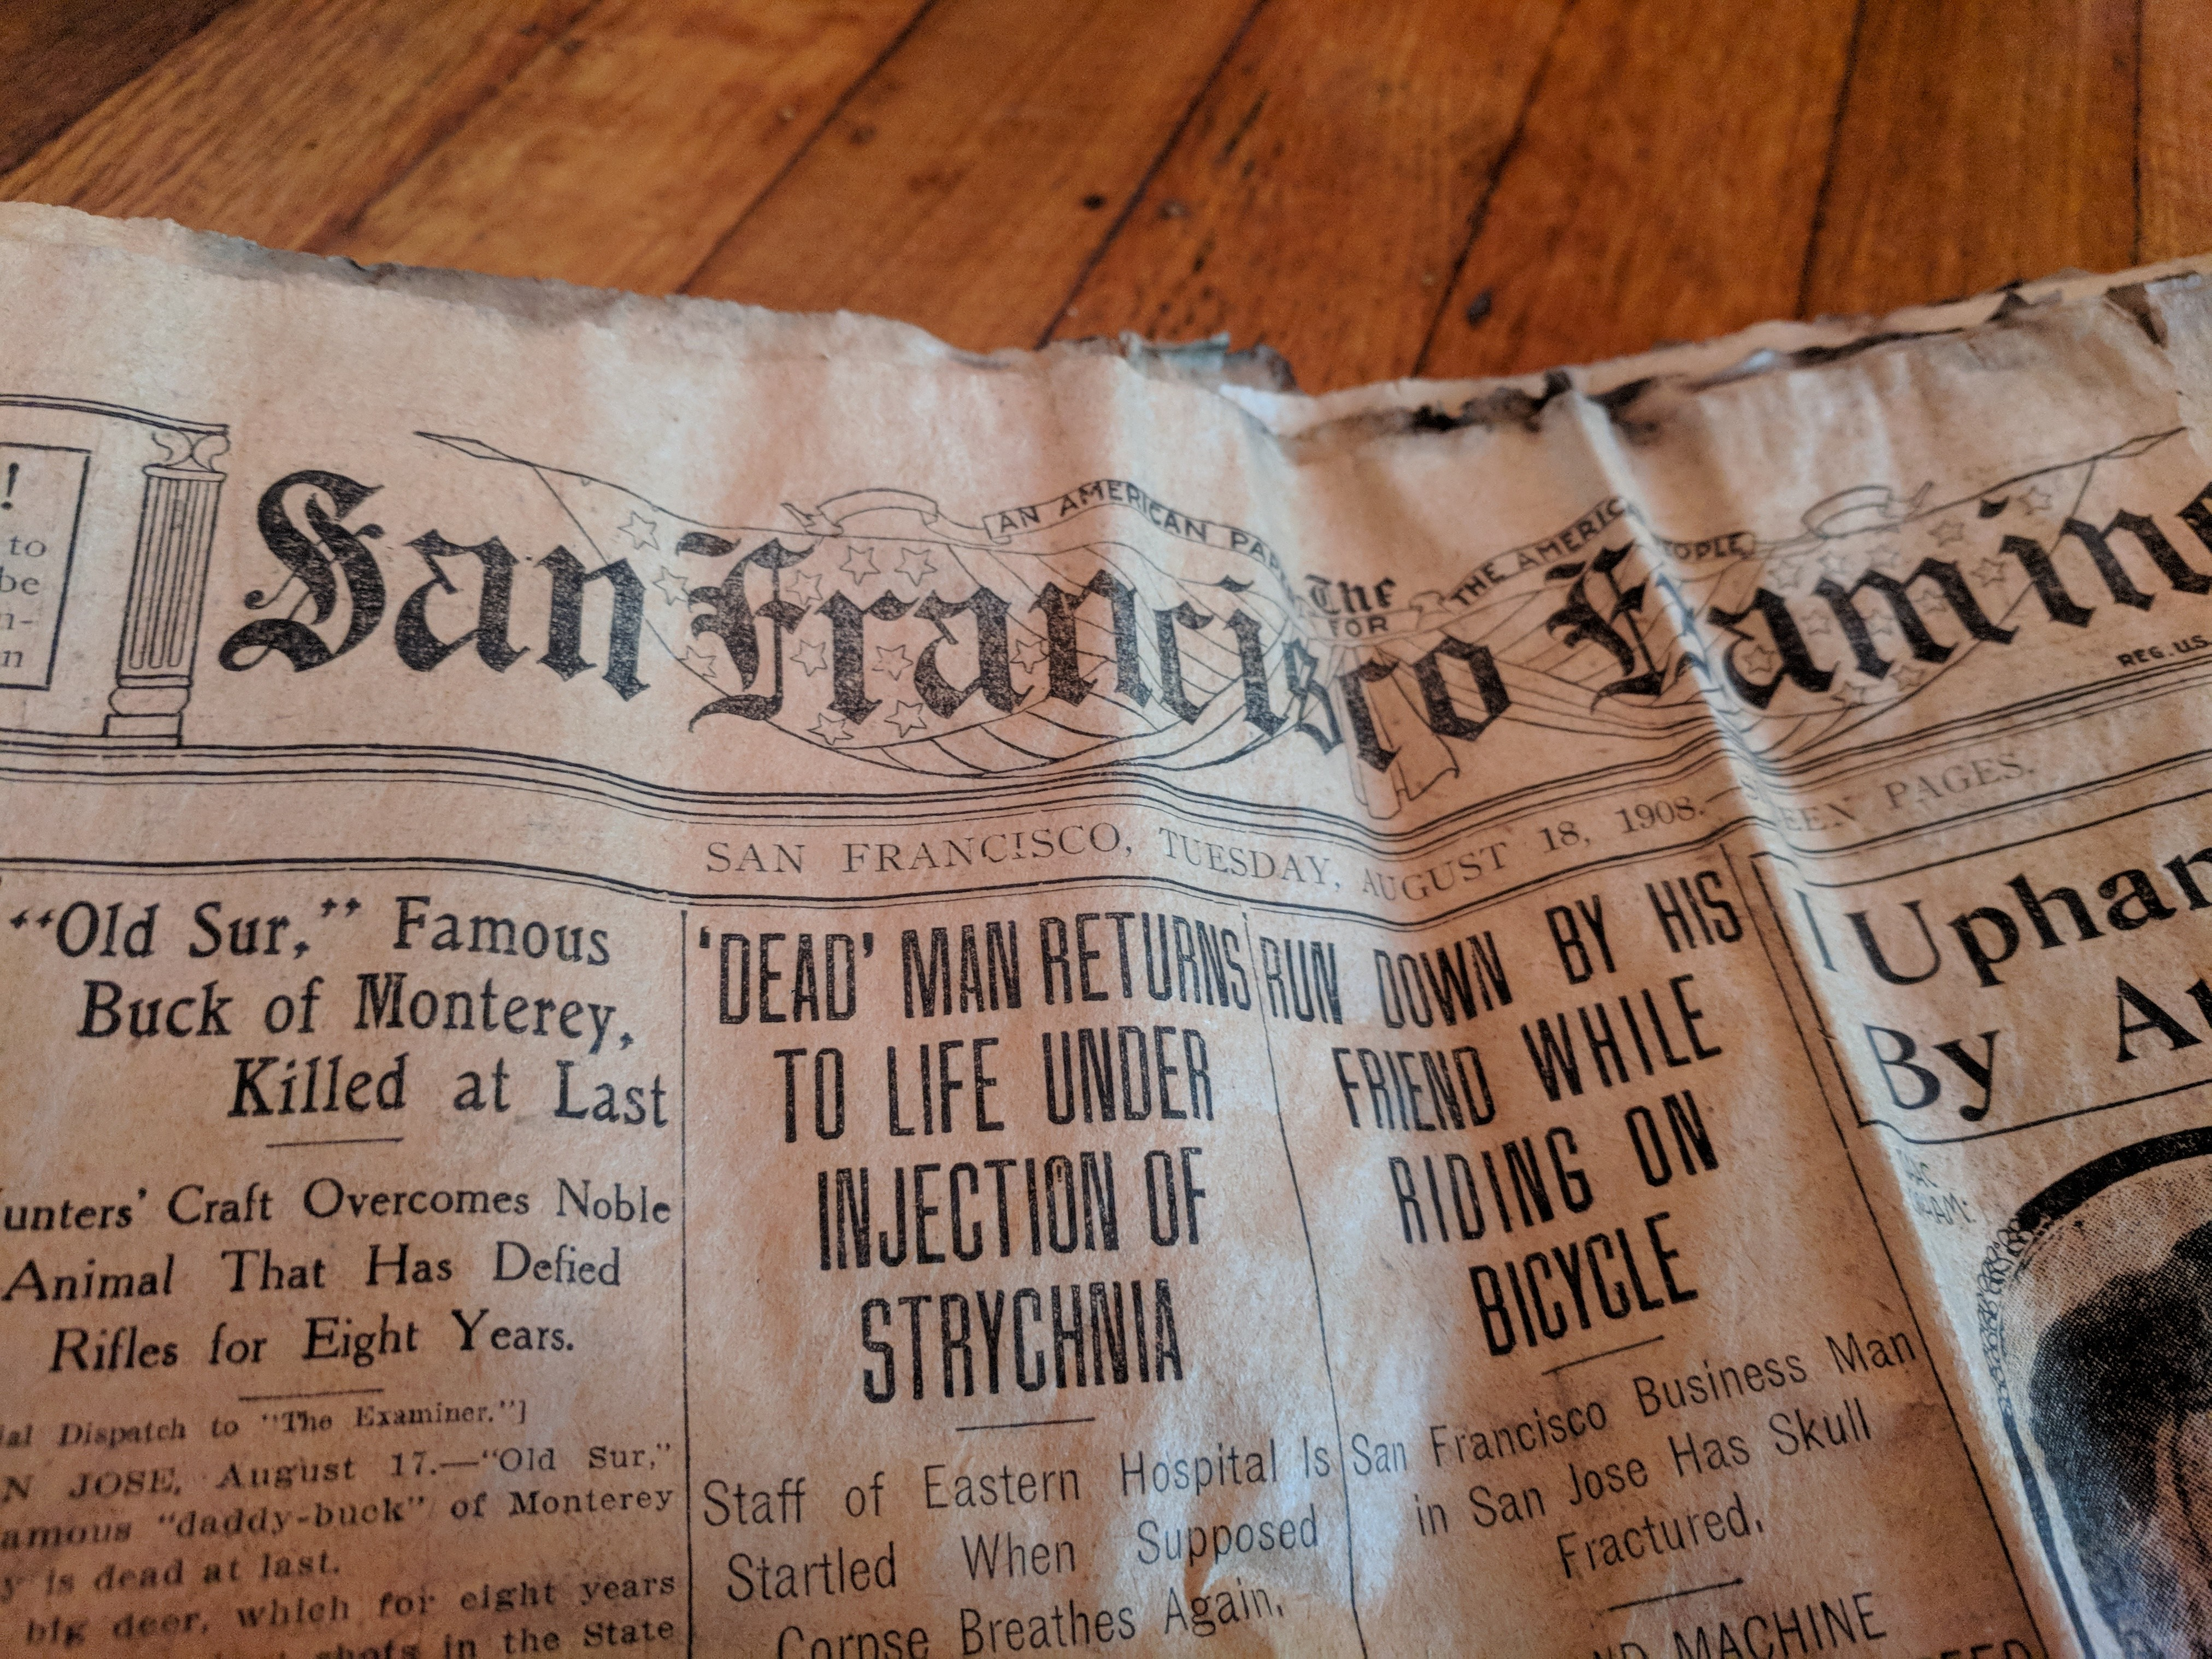 Cole Valley Flat For $15;  Scantily Clad Bathers Arrested; Dead Man Returns To Life – August 18, 1908